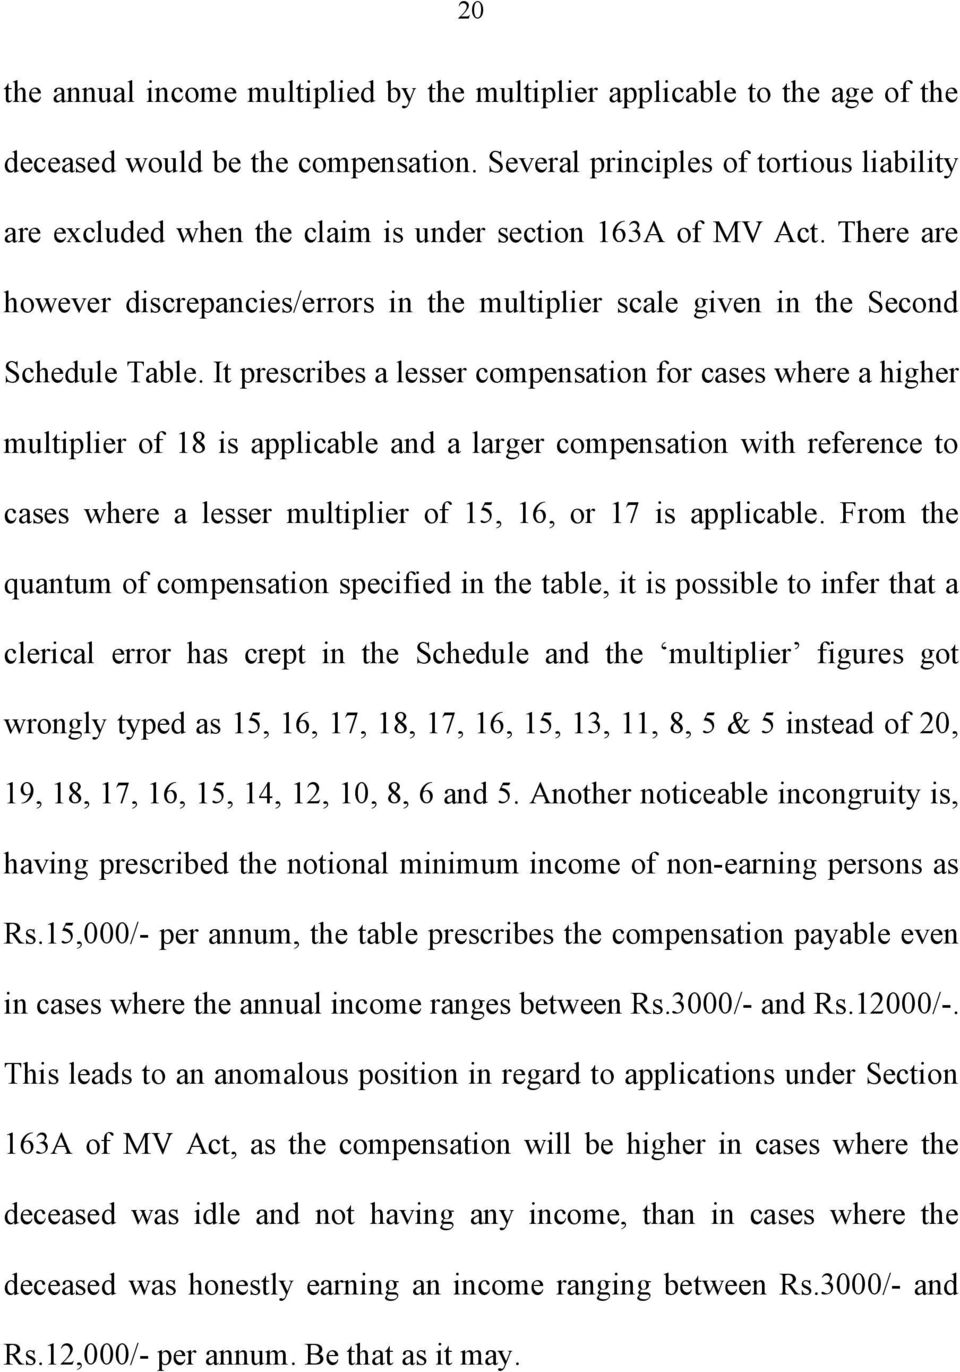 It prescribes a lesser compensation for cases where a higher multiplier of 18 is applicable and a larger compensation with reference to cases where a lesser multiplier of 15, 16, or 17 is applicable.